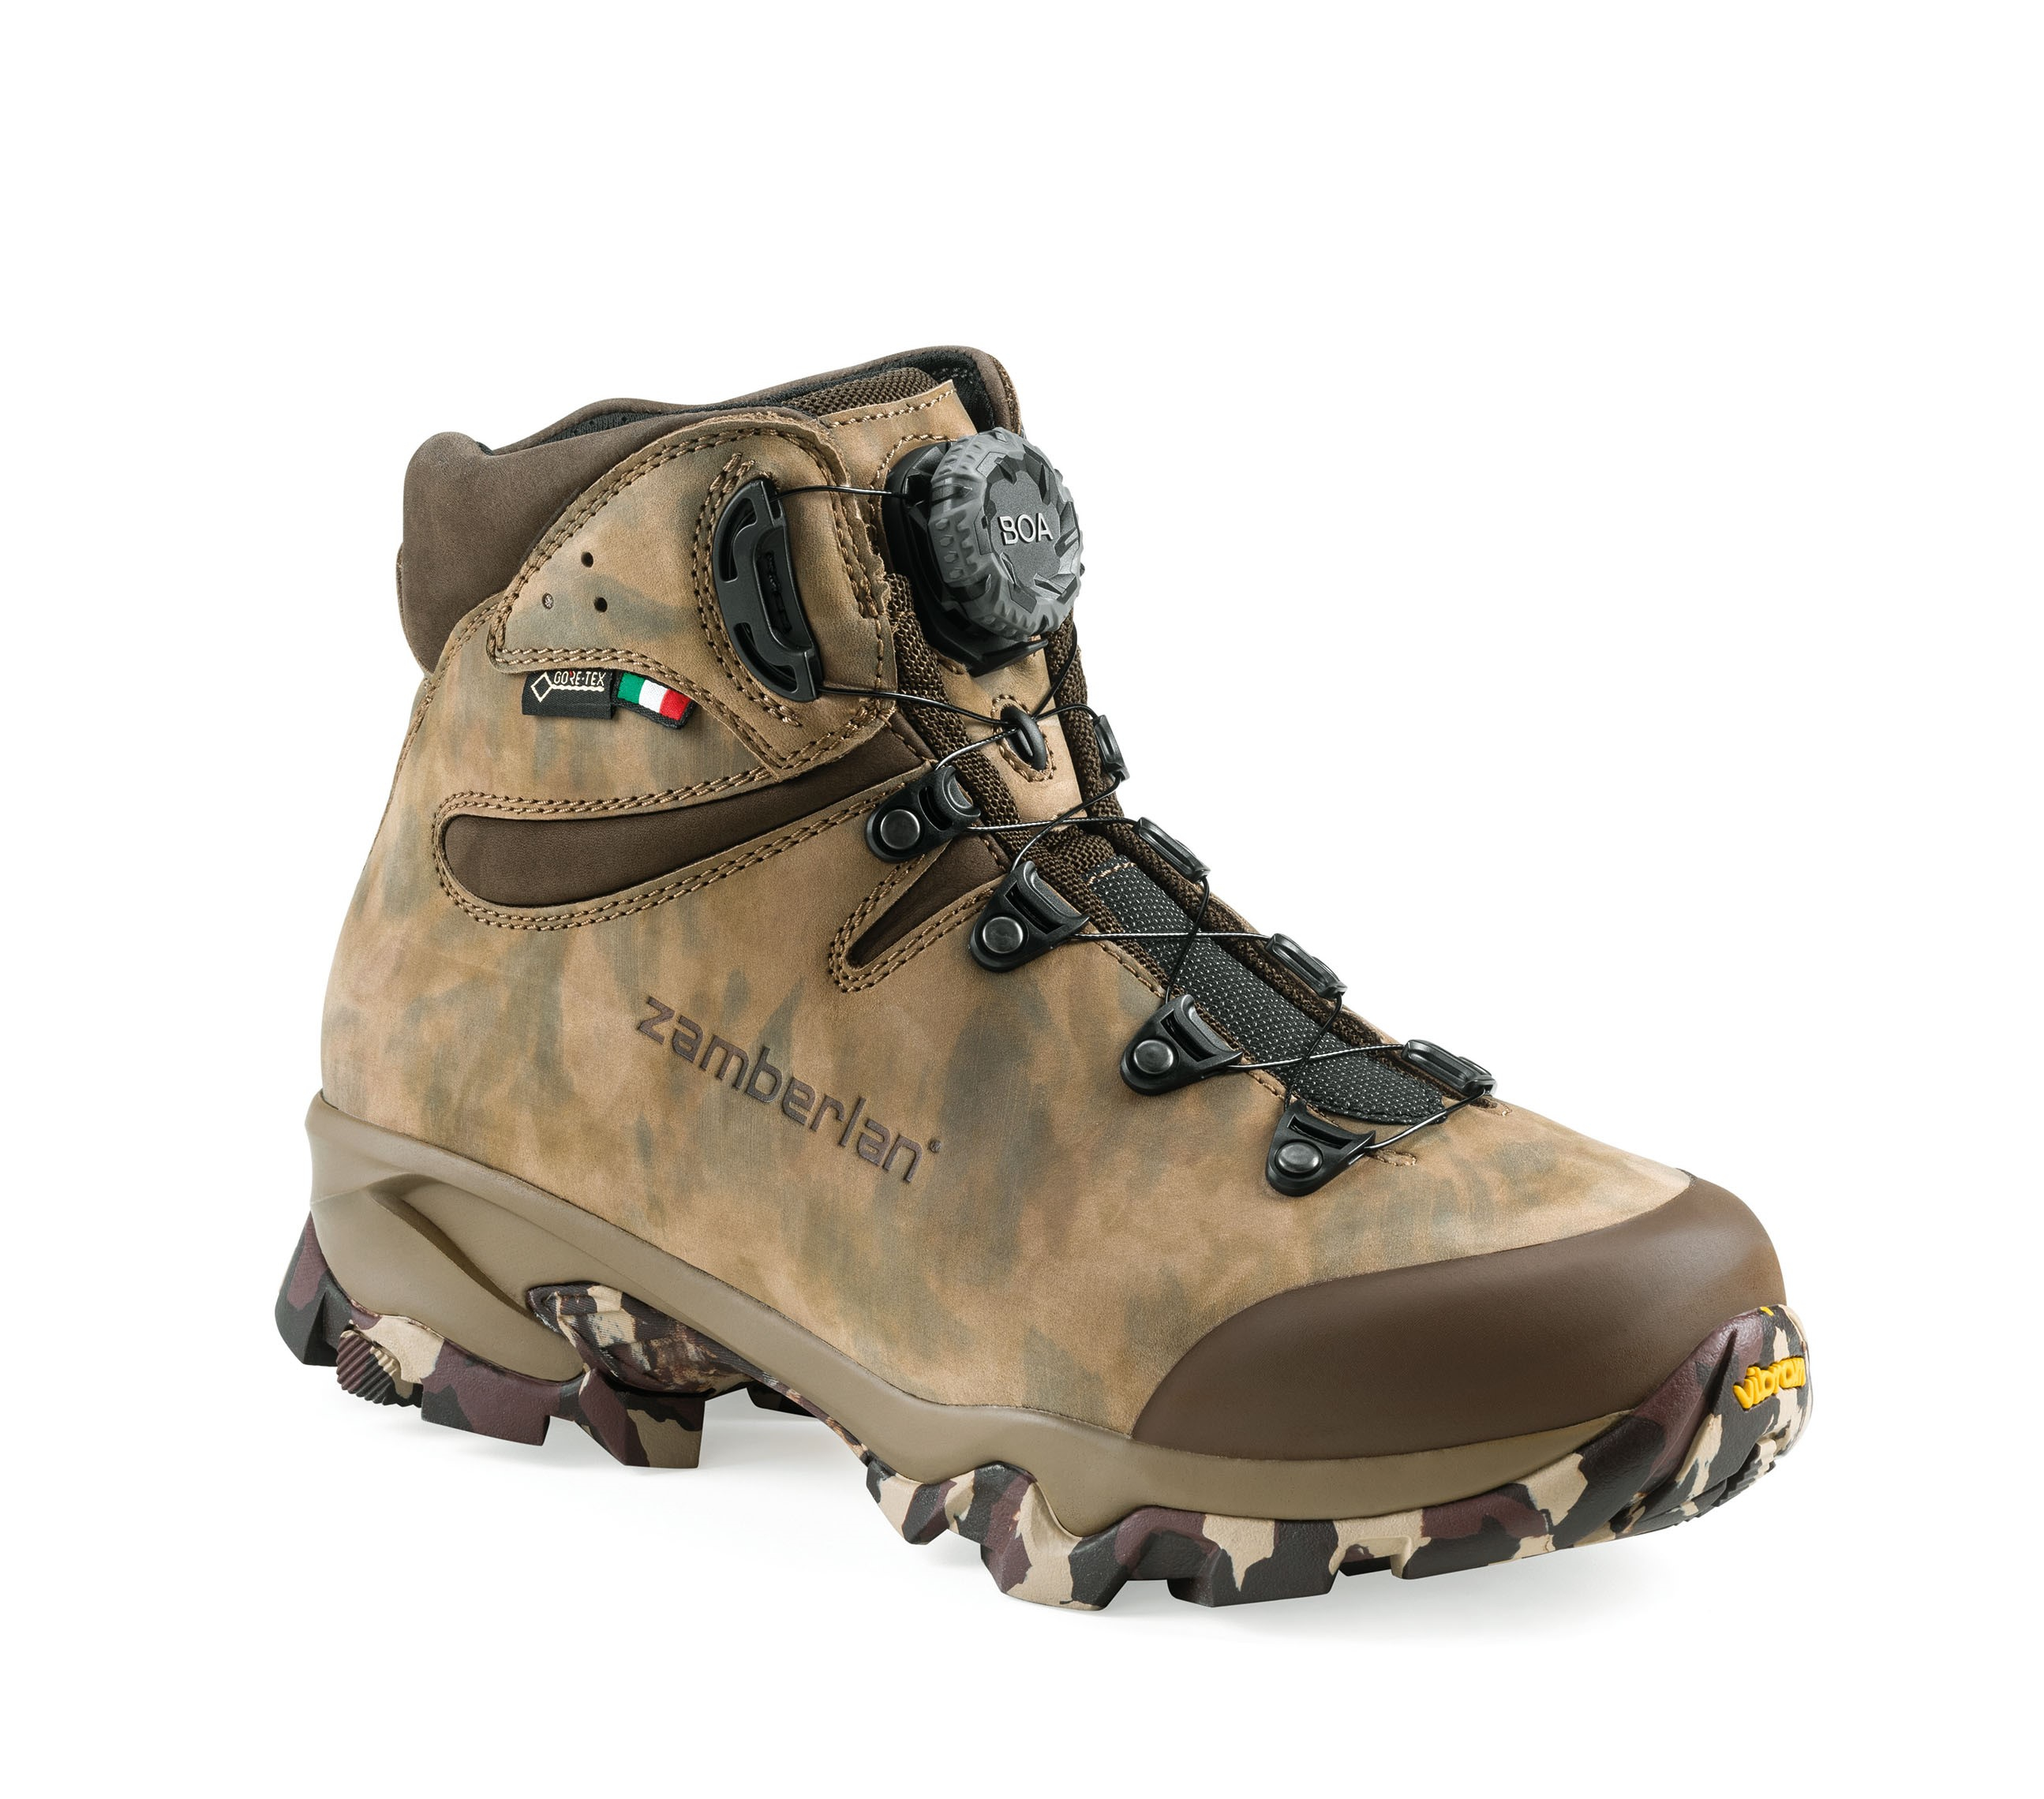 4013 LEOPARD GTX RR BOA - Bottes Chasse - Camouflage